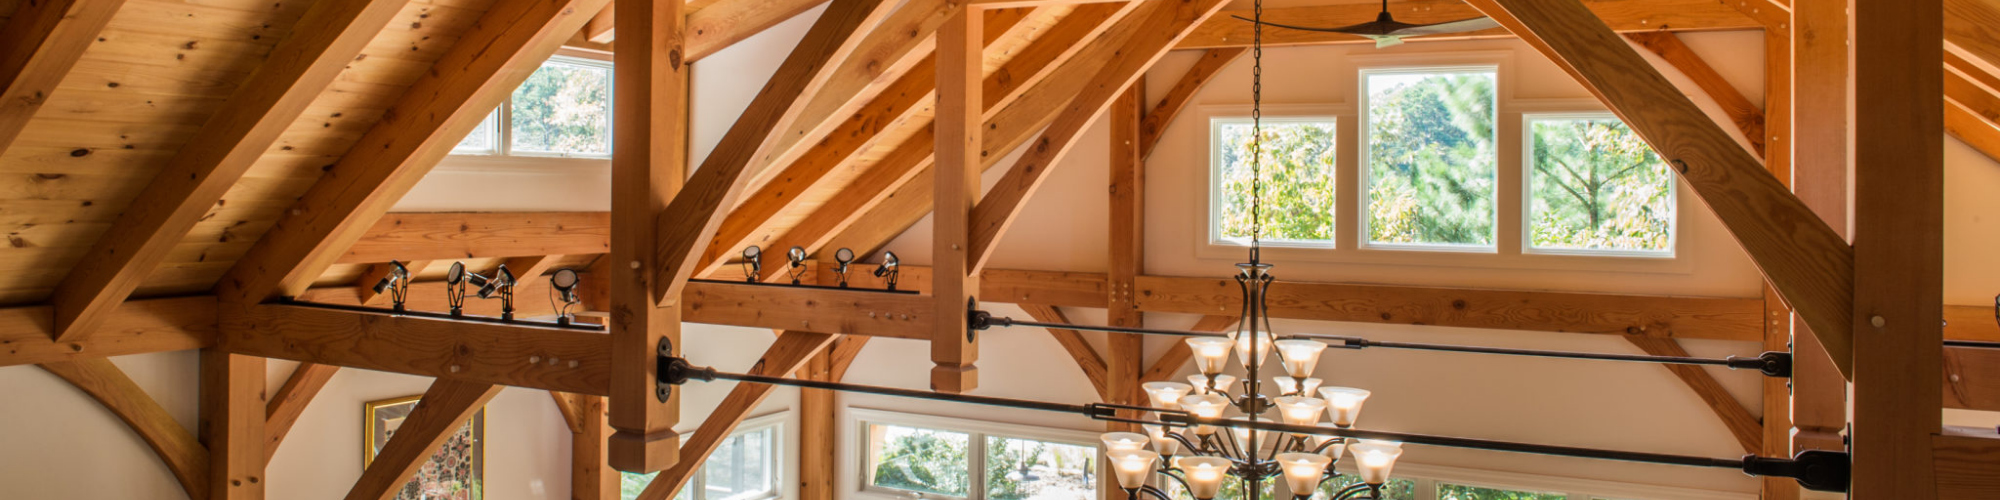 Why Build Timber Frame Homes?